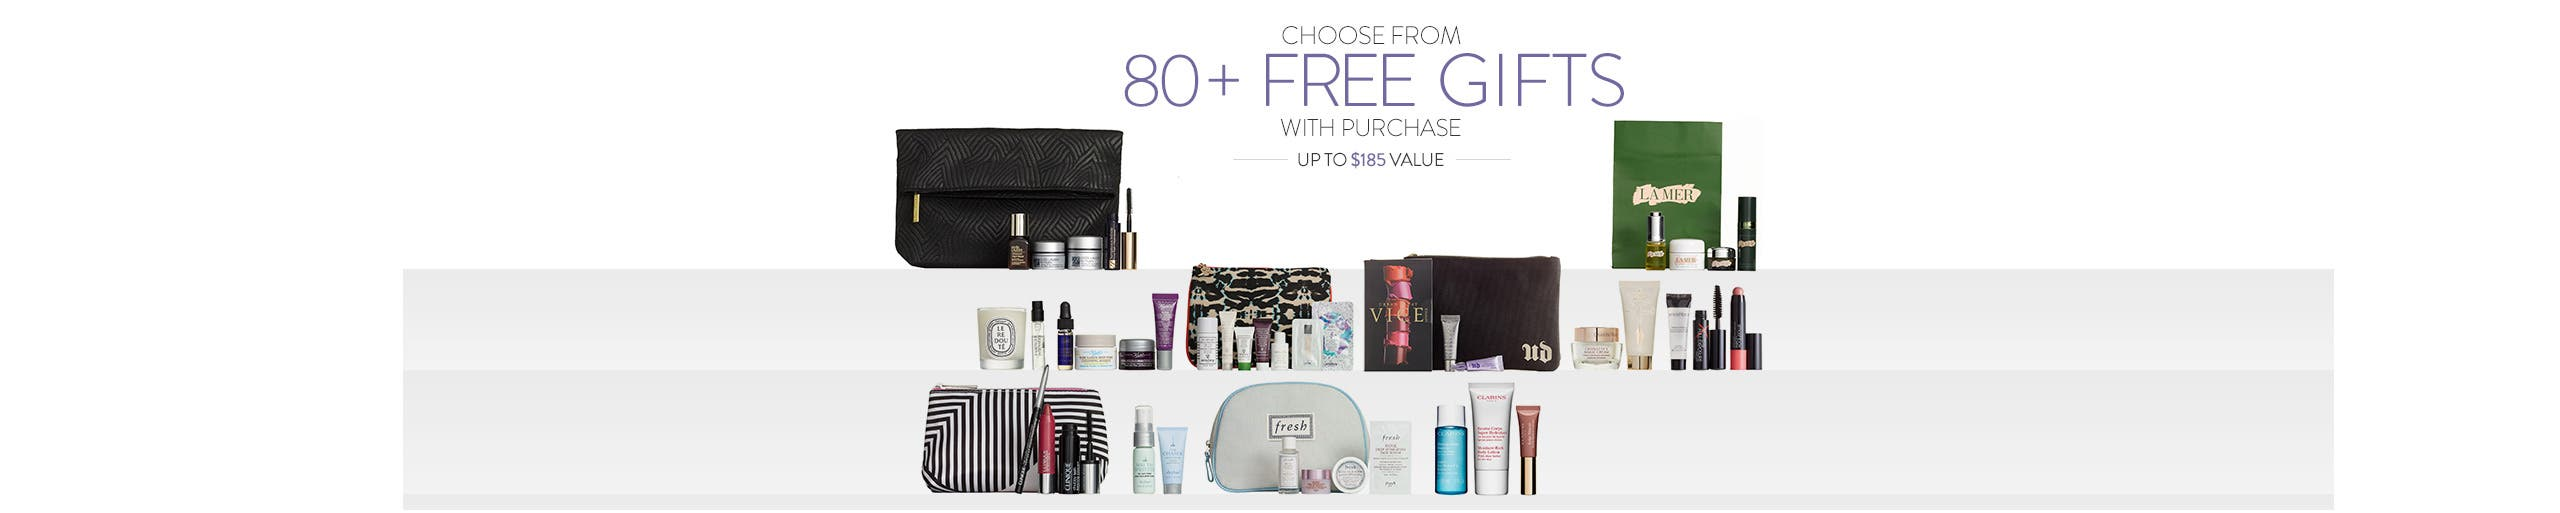 Choose from over 80 free gifts with purchase. Up to $185 value.